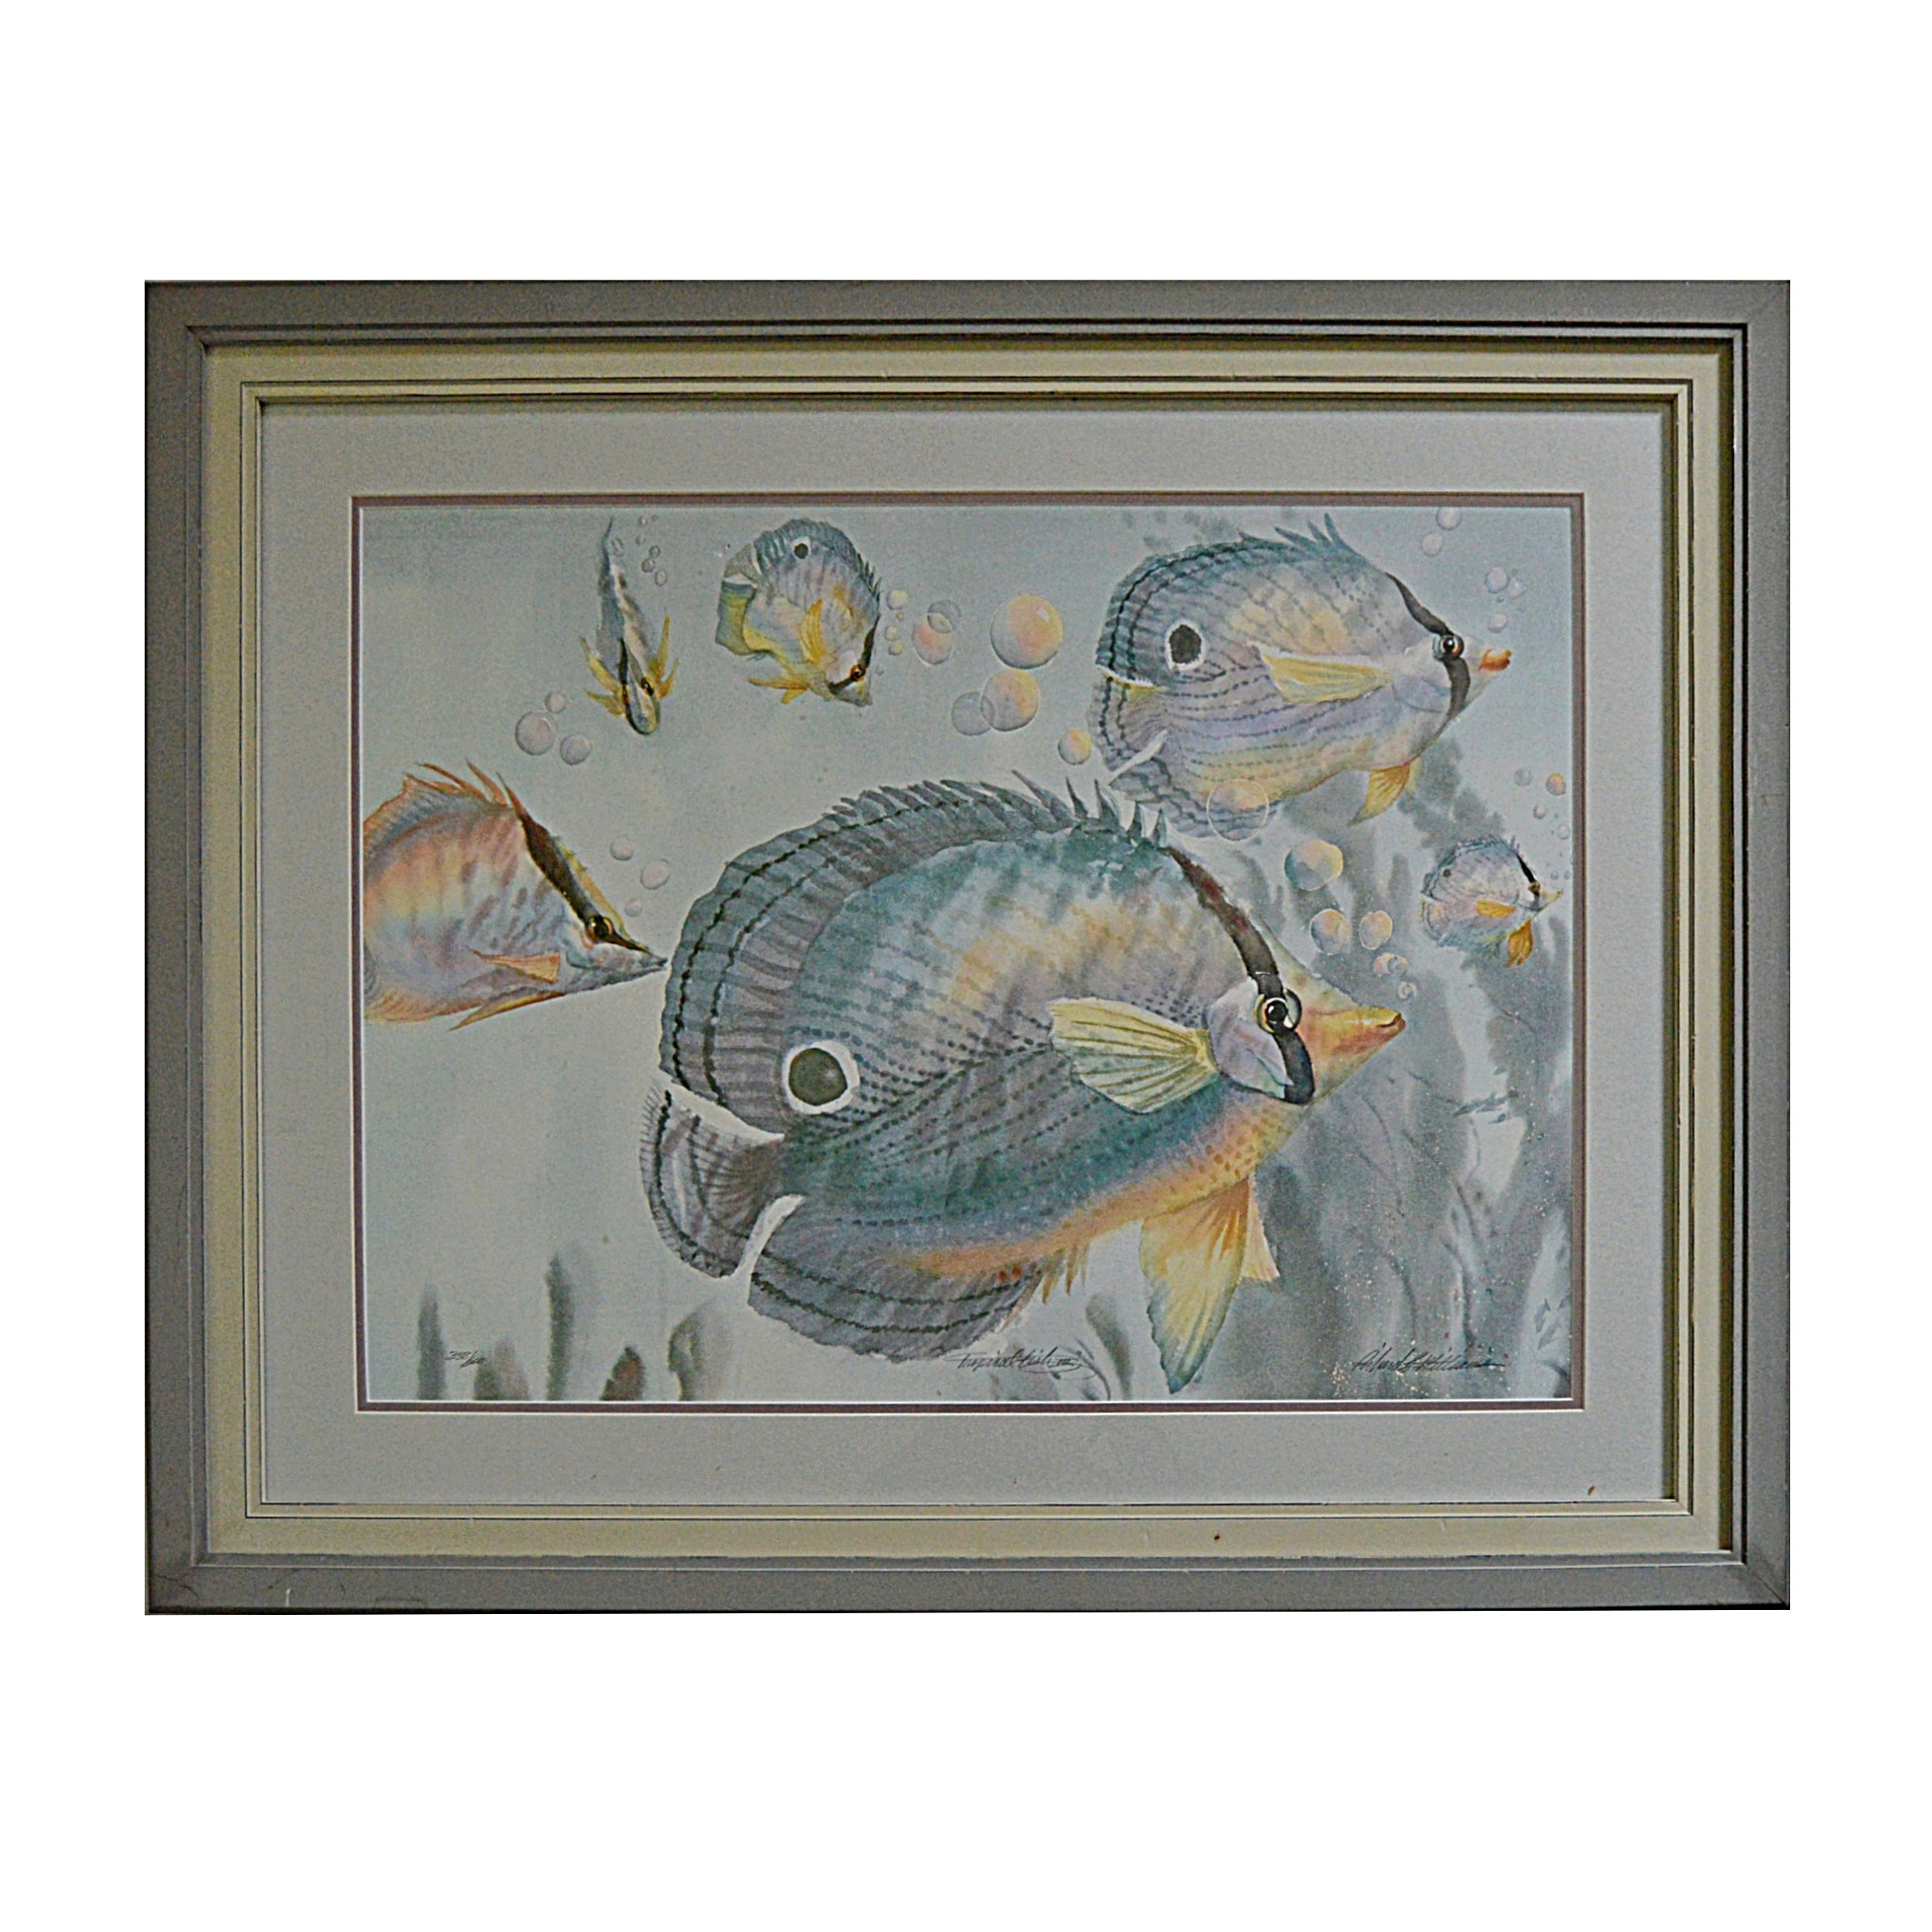 "Richard Williams Signed Print Titled ""Tropical Fish III"""